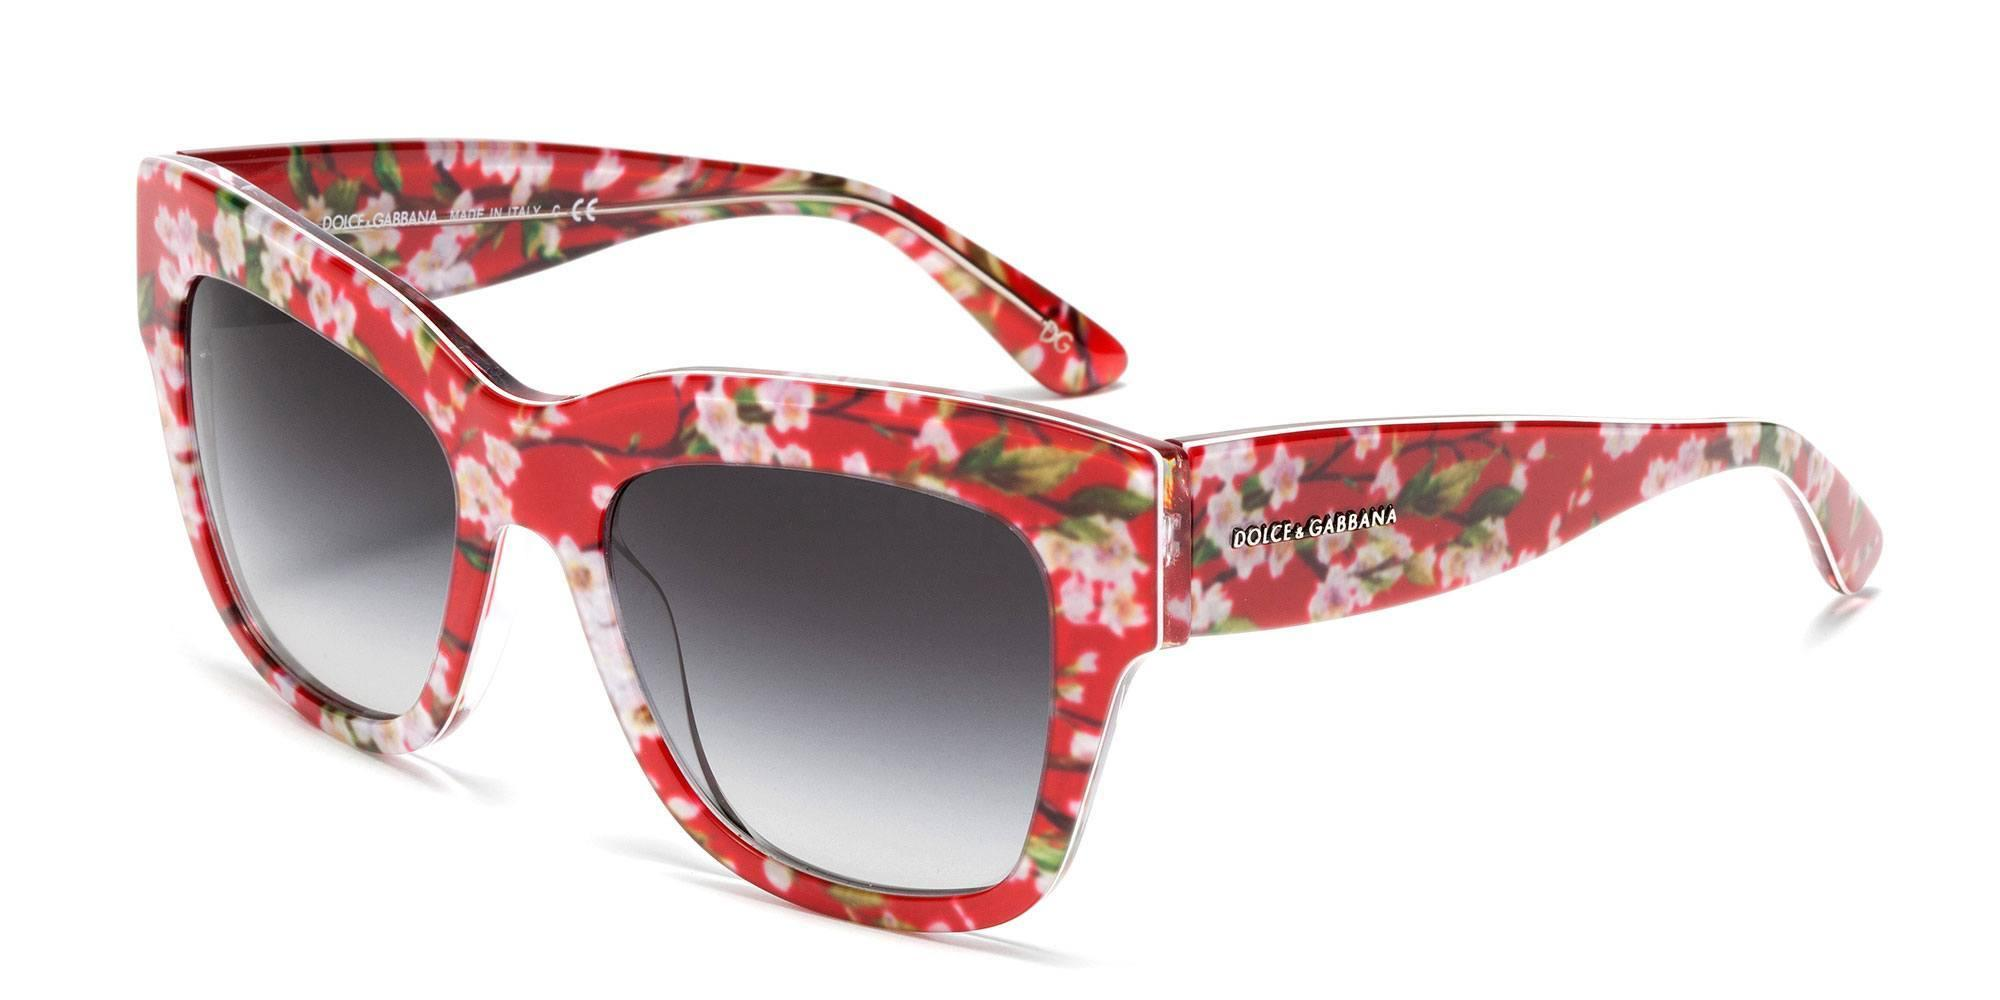 62513b4cdb Dolce   Gabbana s Top Three Floral Sunglasses